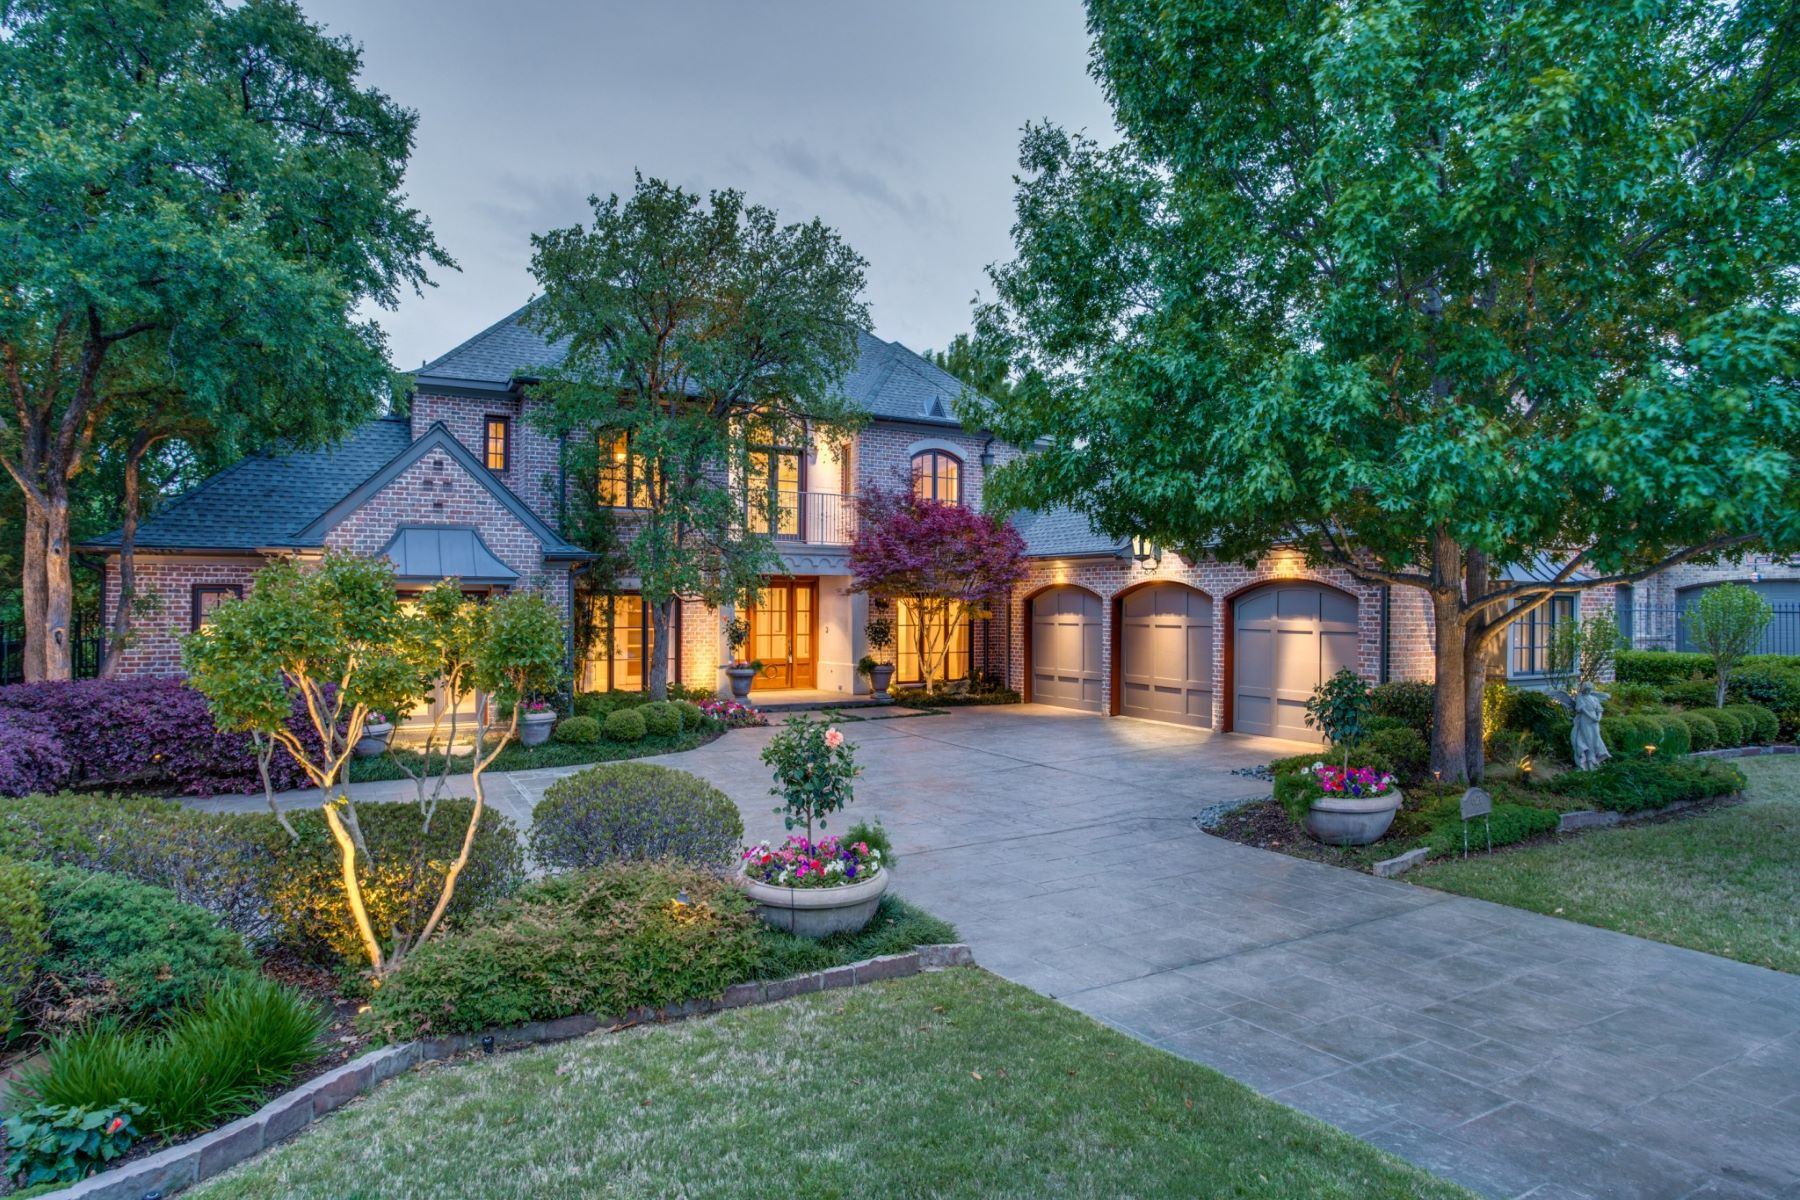 Single Family Homes for Active at 6628 Whispering Wood Court 6628 Whispering Woods Ct. Plano, Texas 75024 United States